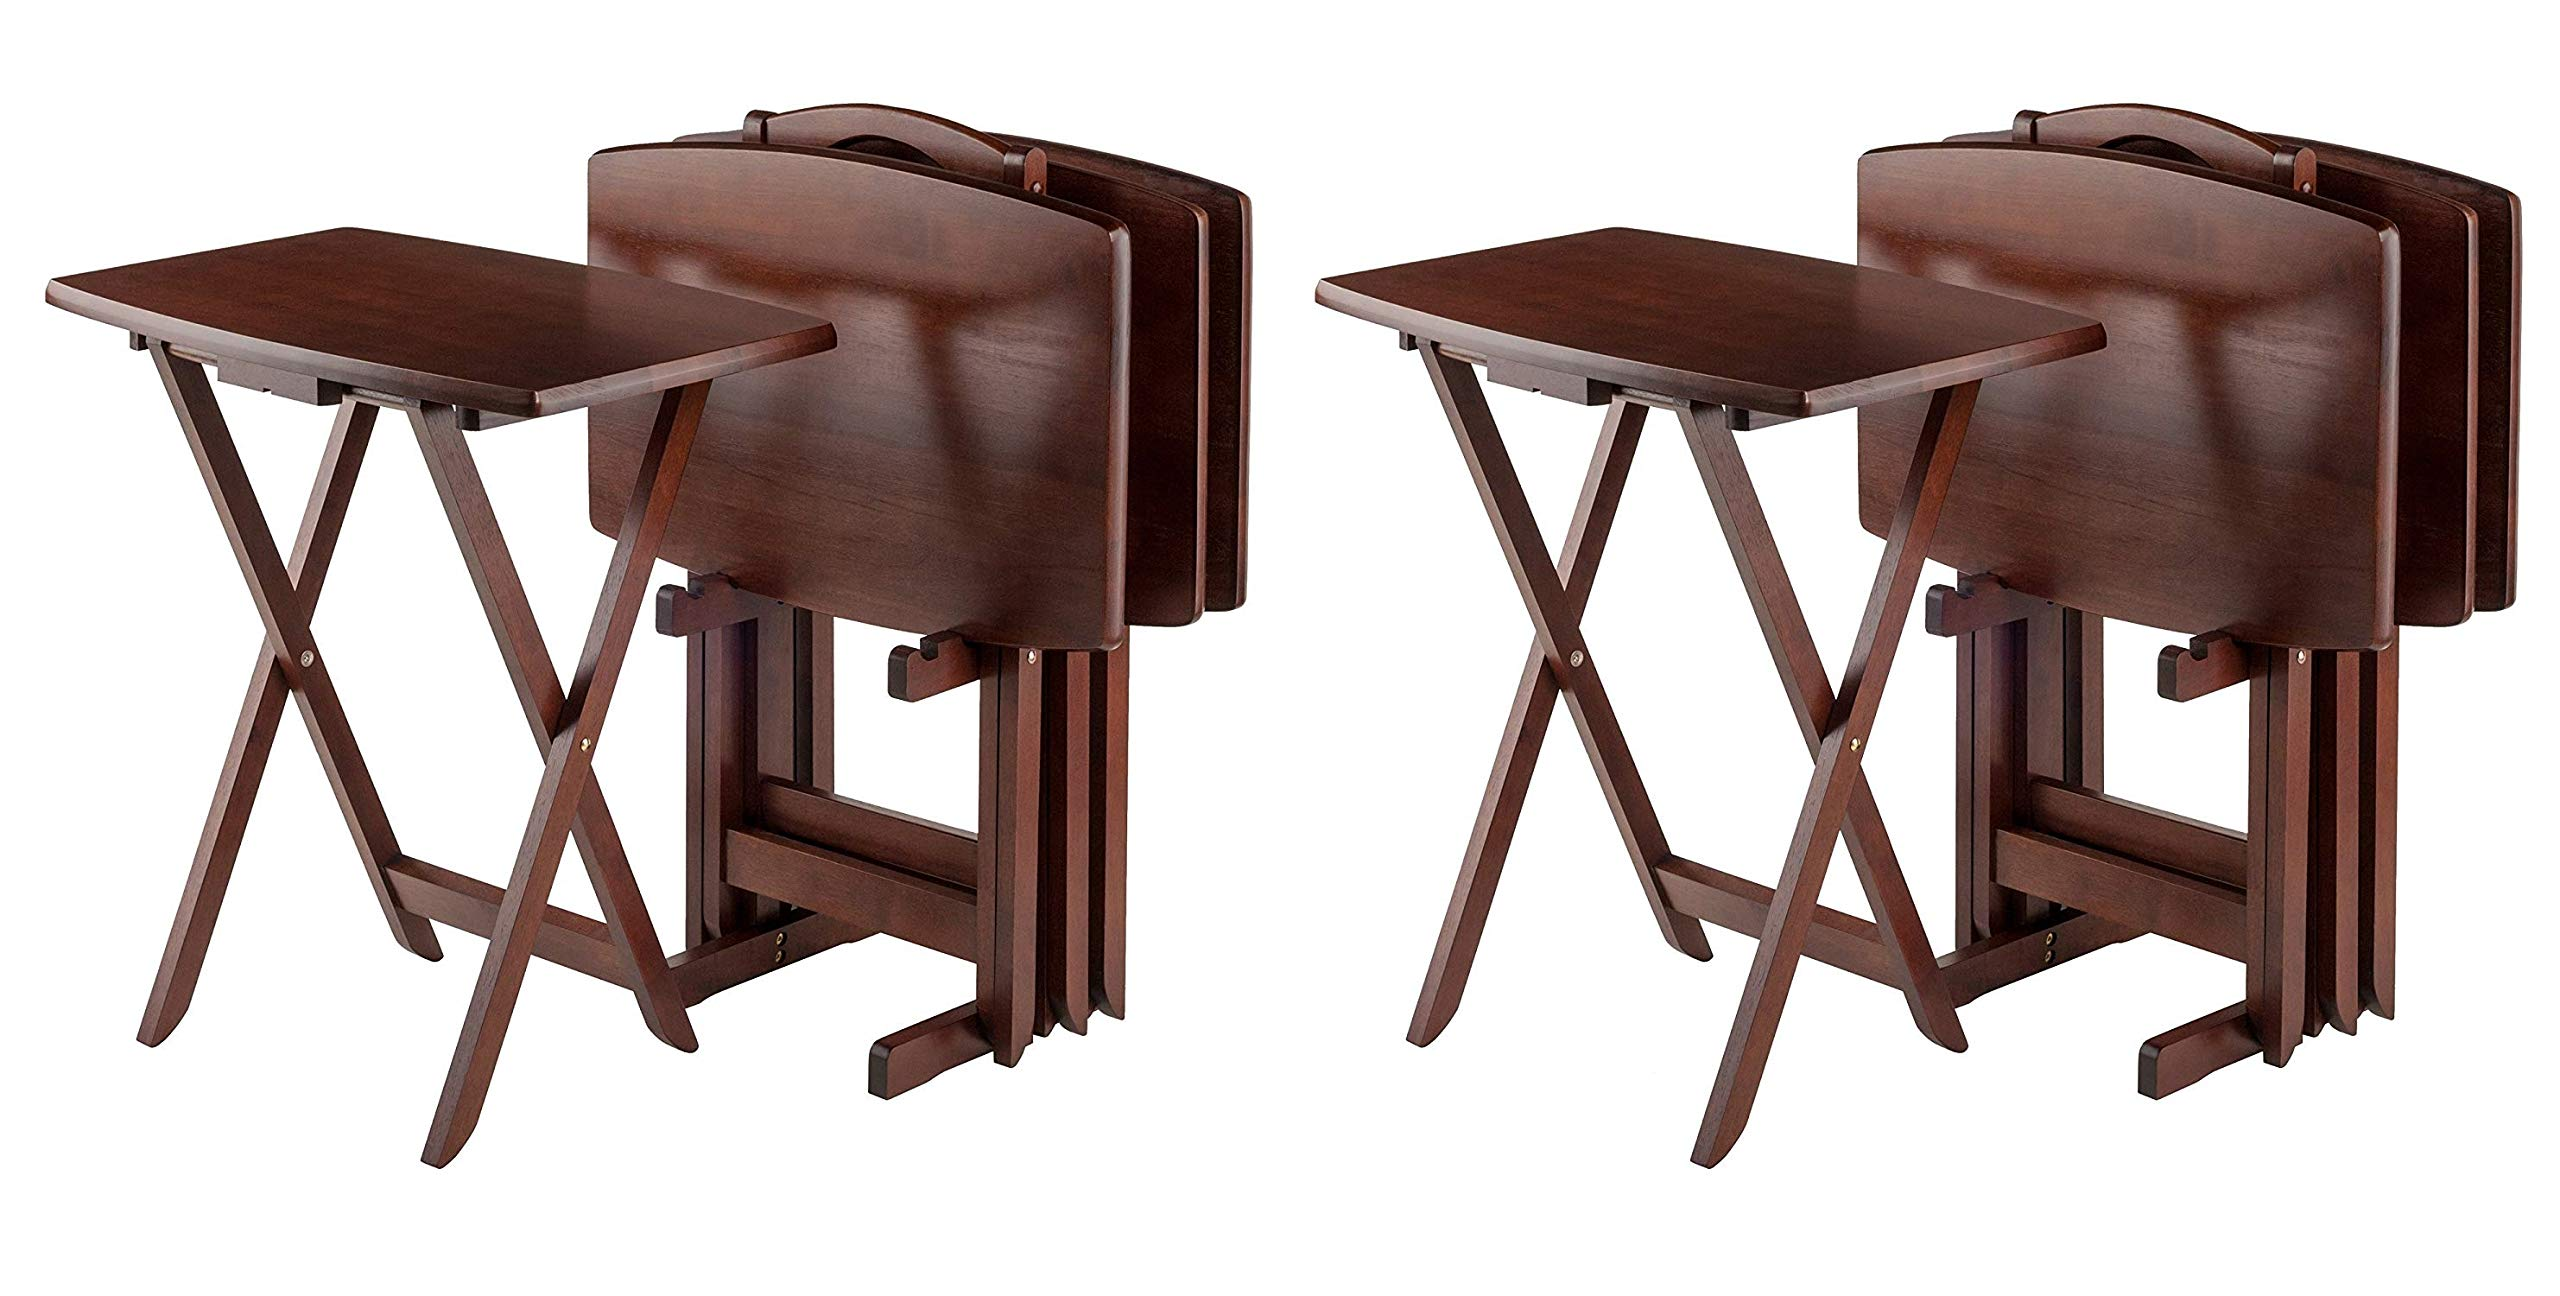 Winsome Oversize Snack Table Set, Walnut (2 Sets) by Winsome Wood